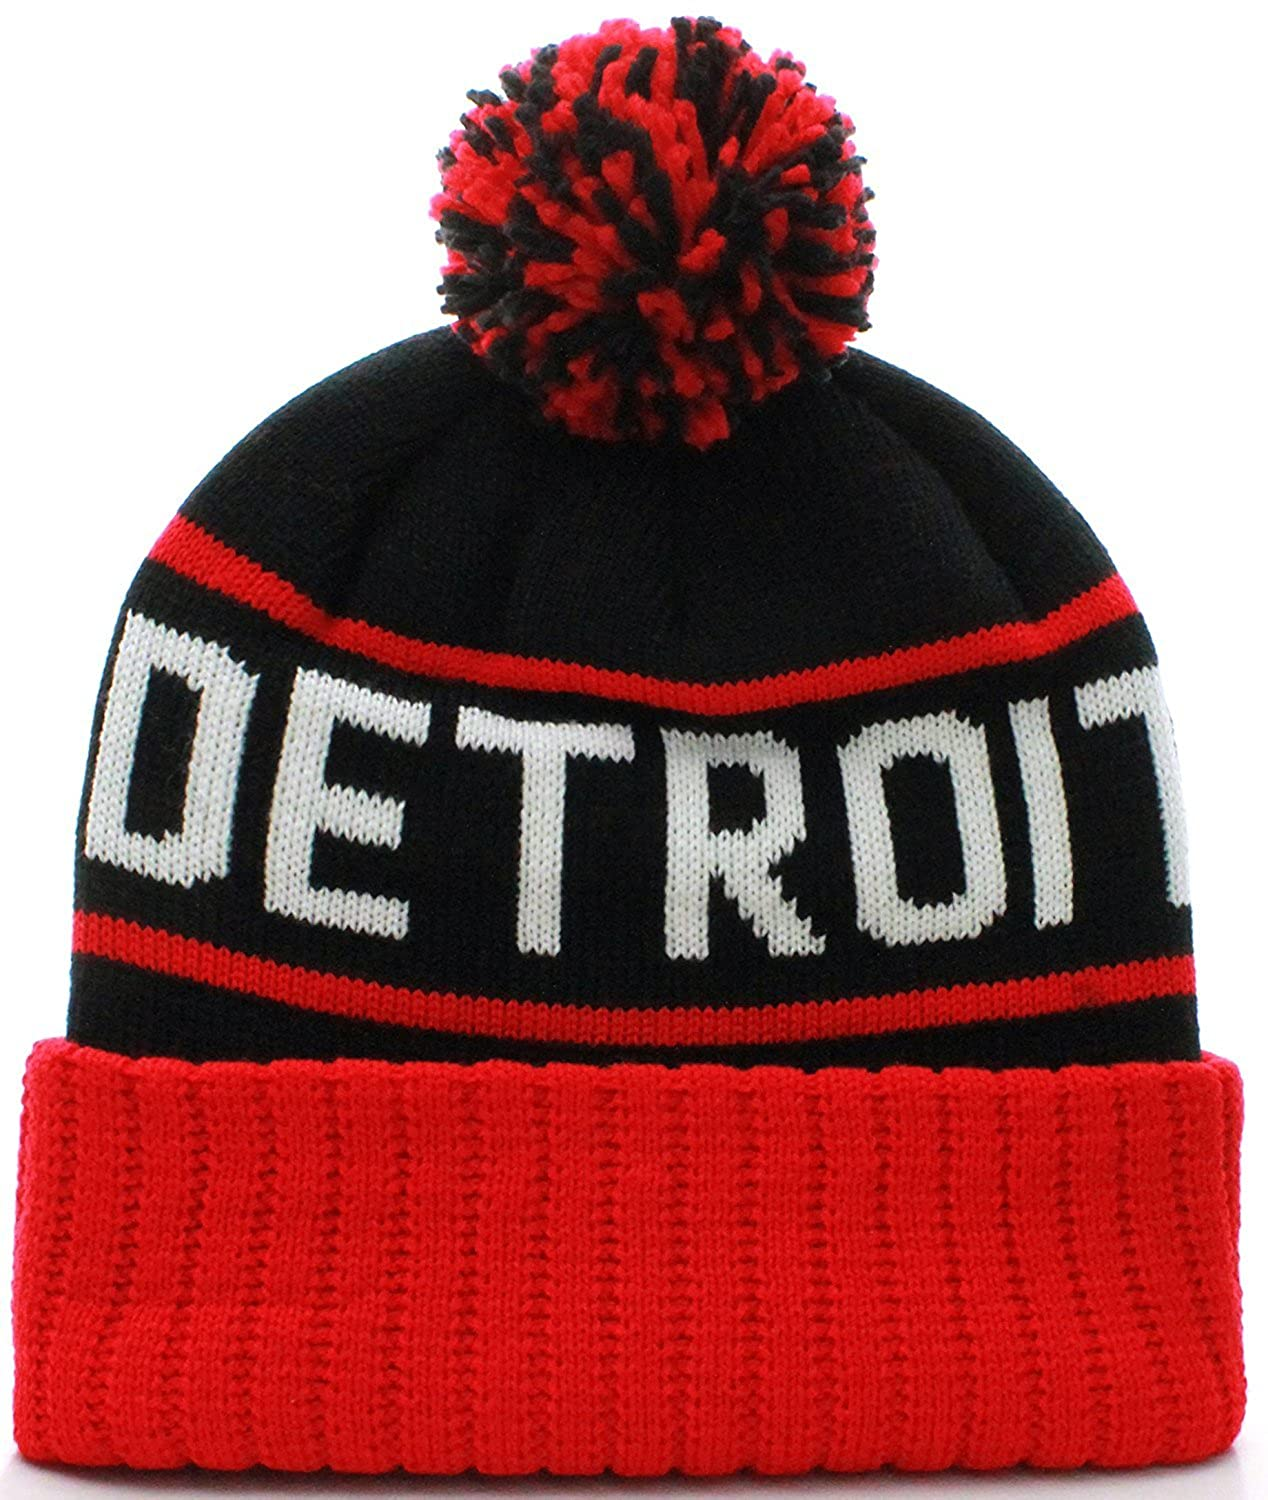 2d3426f517d Amazon.com  US Cities Detroit Michigan Cuff Knit Pom Pom Beanie Gorra Hat  Cap (Detroit Black Red)  Clothing